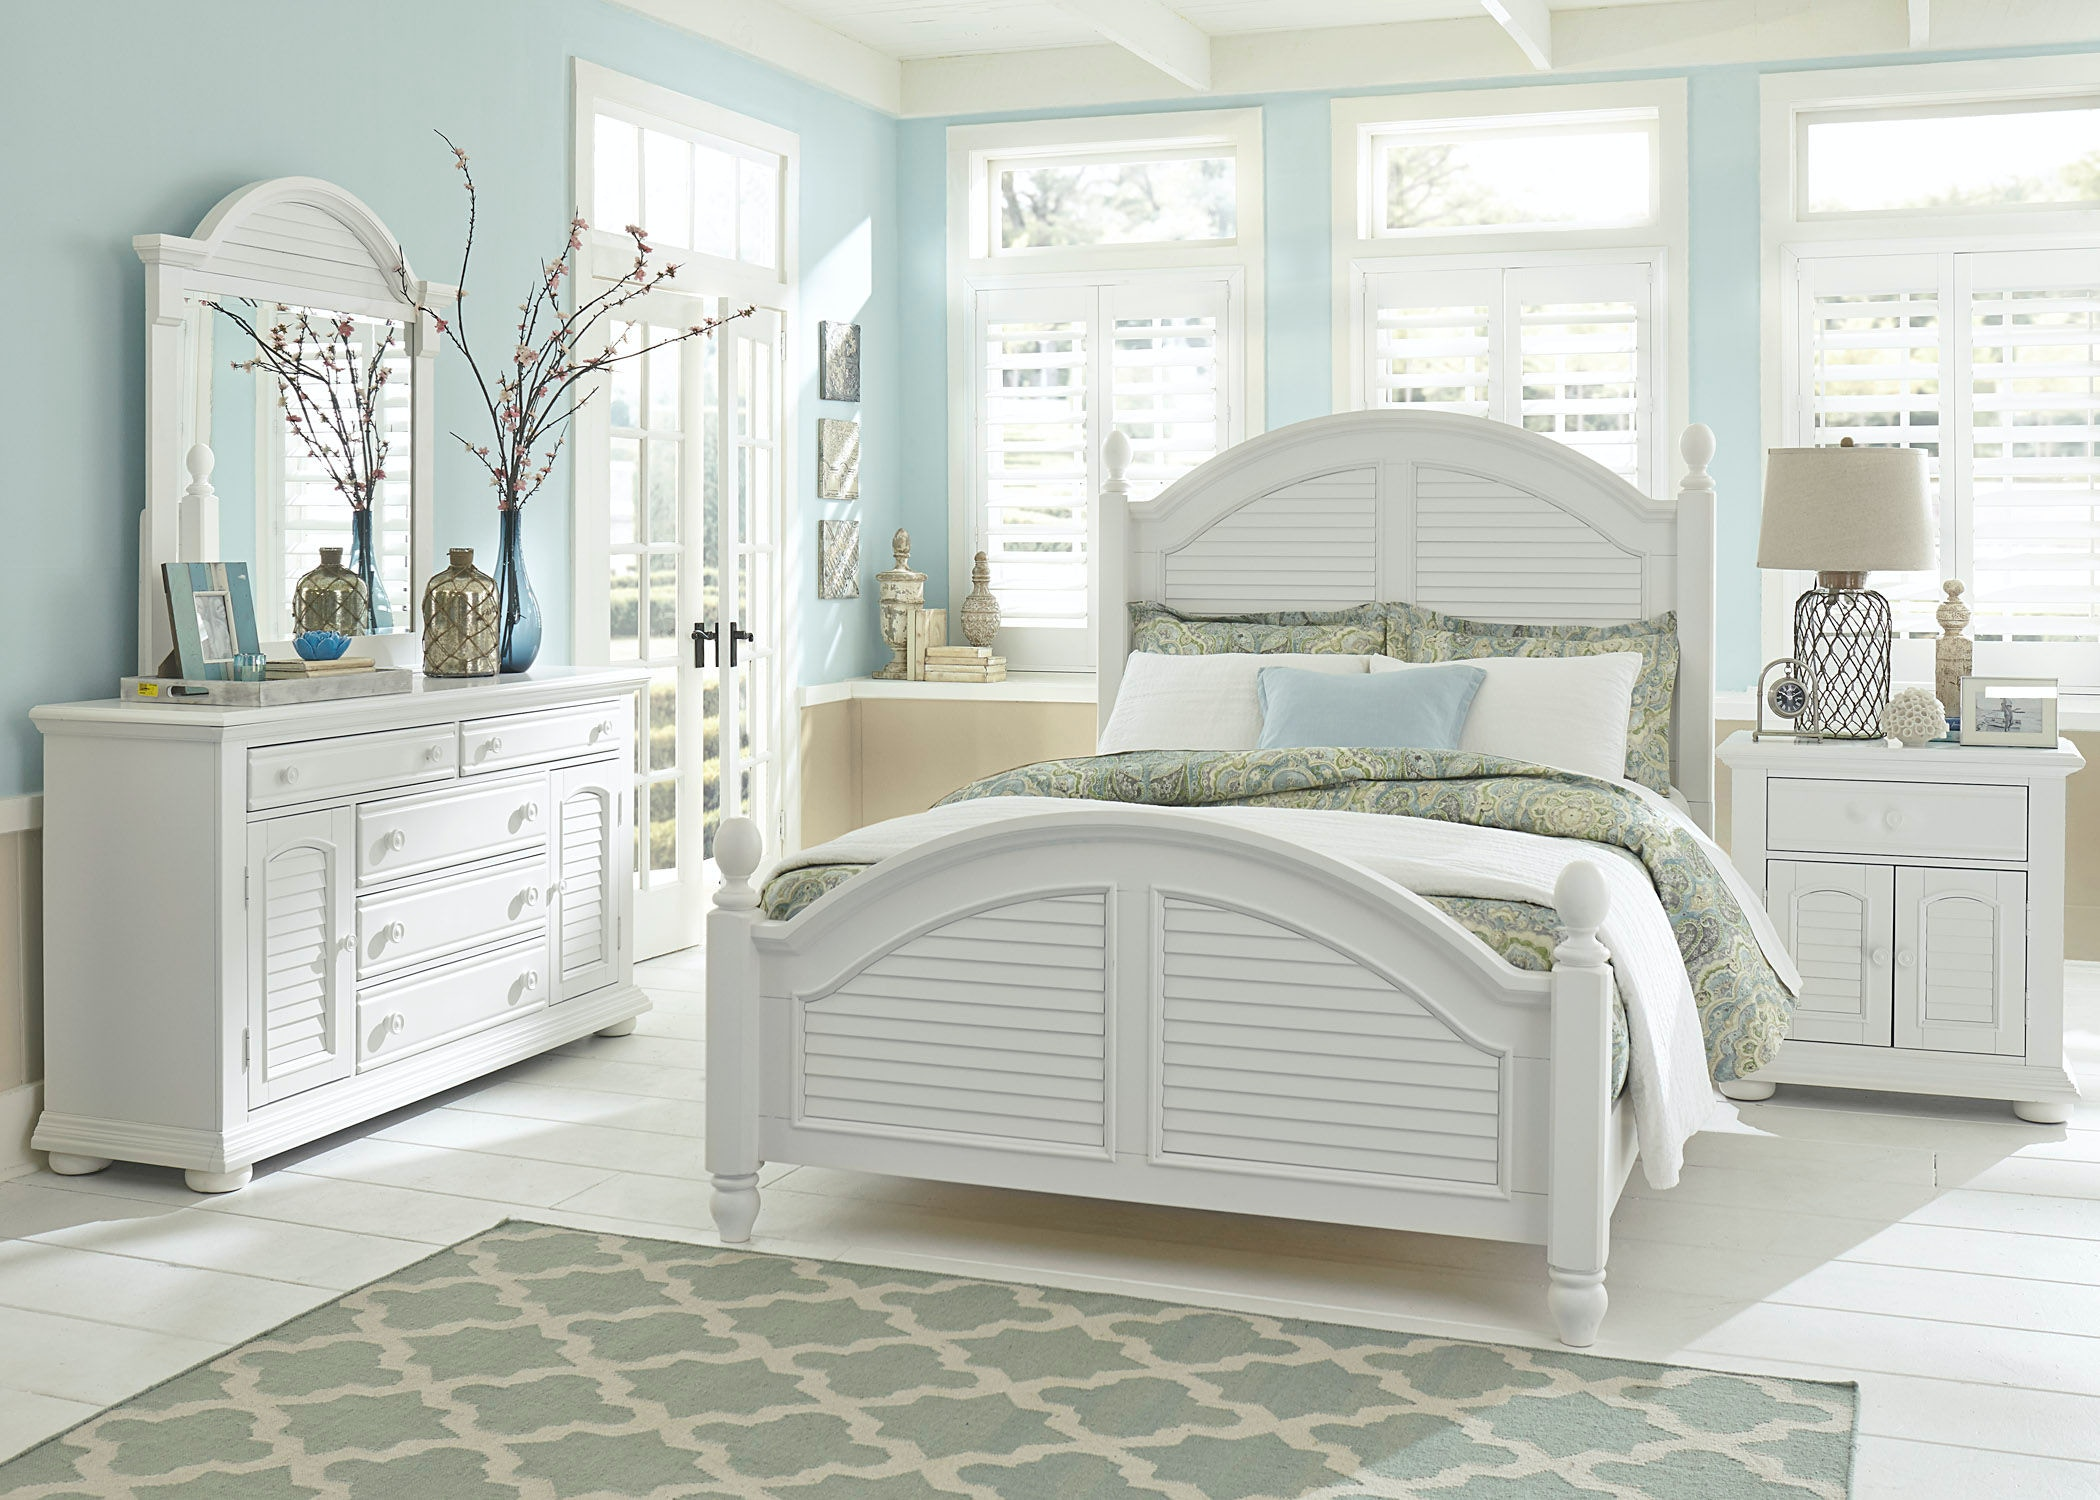 Liberty Furniture Bedroom King Poster Bed, Dresser and Mirror, NS